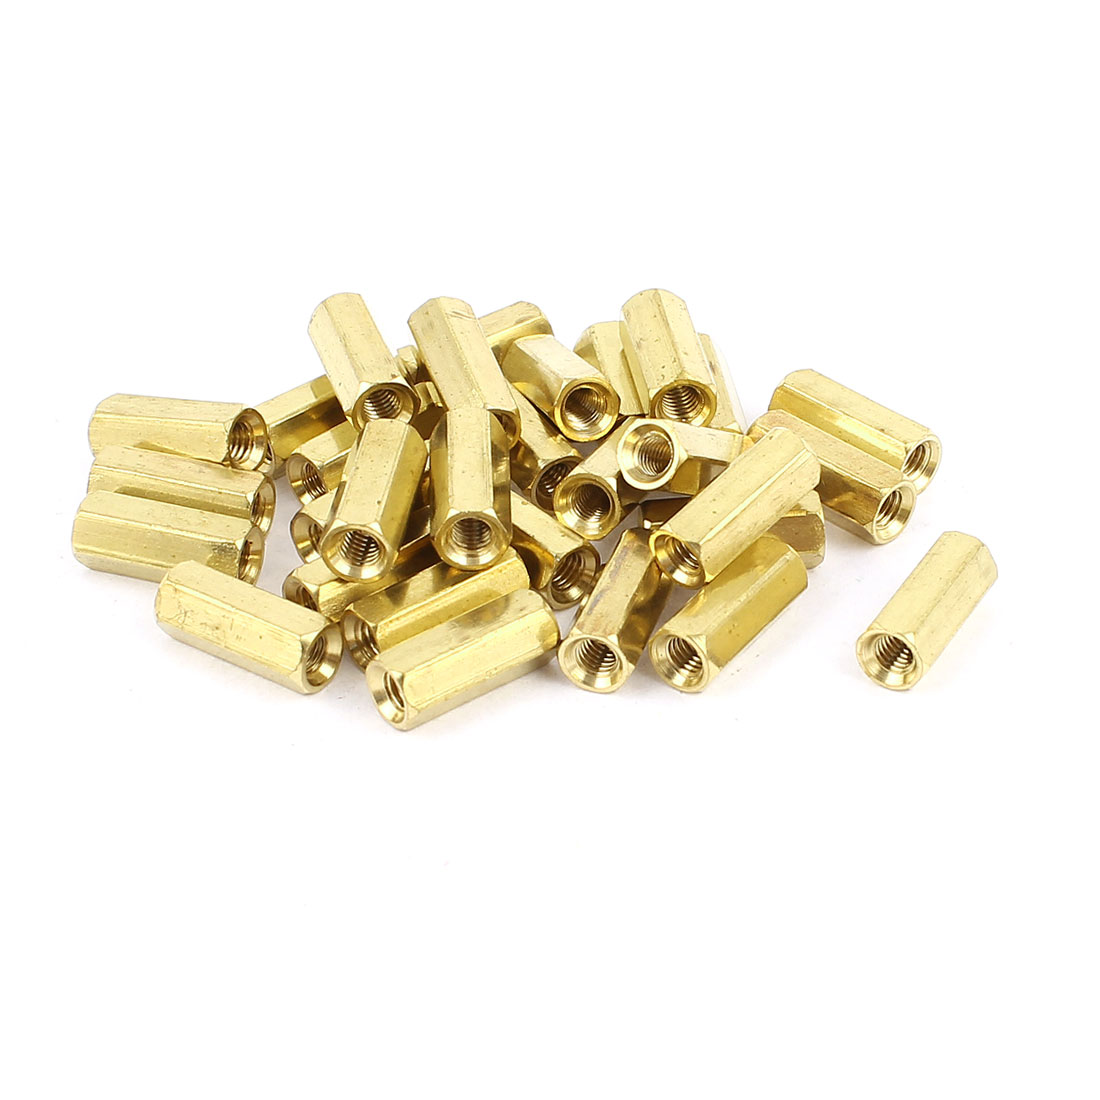 30Pcs M3 Female 12mm Long Hexagonal Standoff Spacer Gold Tone